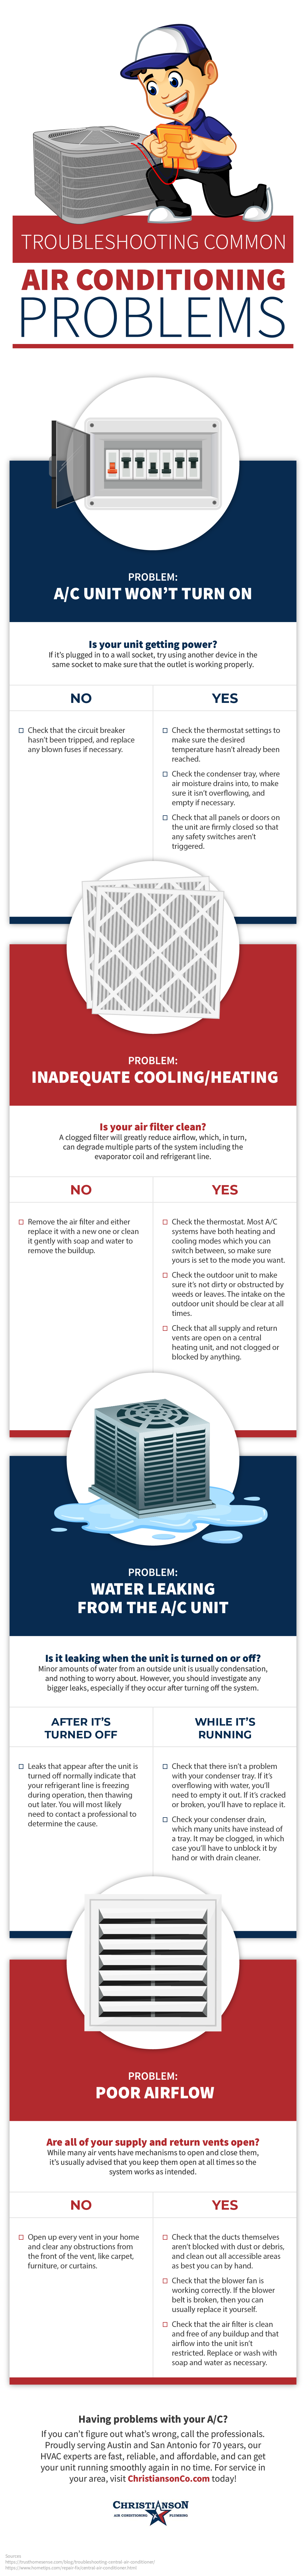 Troubleshooting Common Air Conditioning Problems Infographic